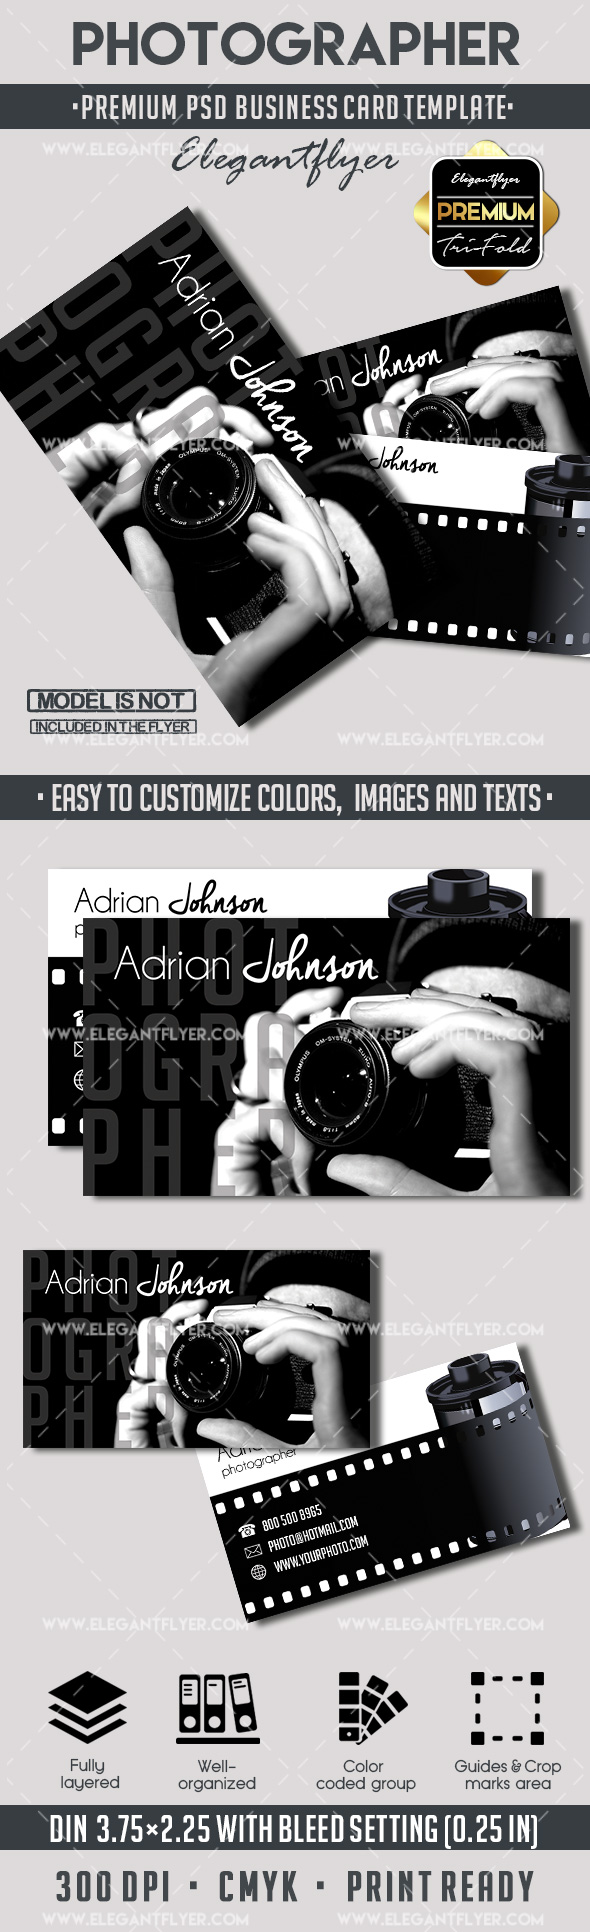 Photographer – Premium Business card PSD Template